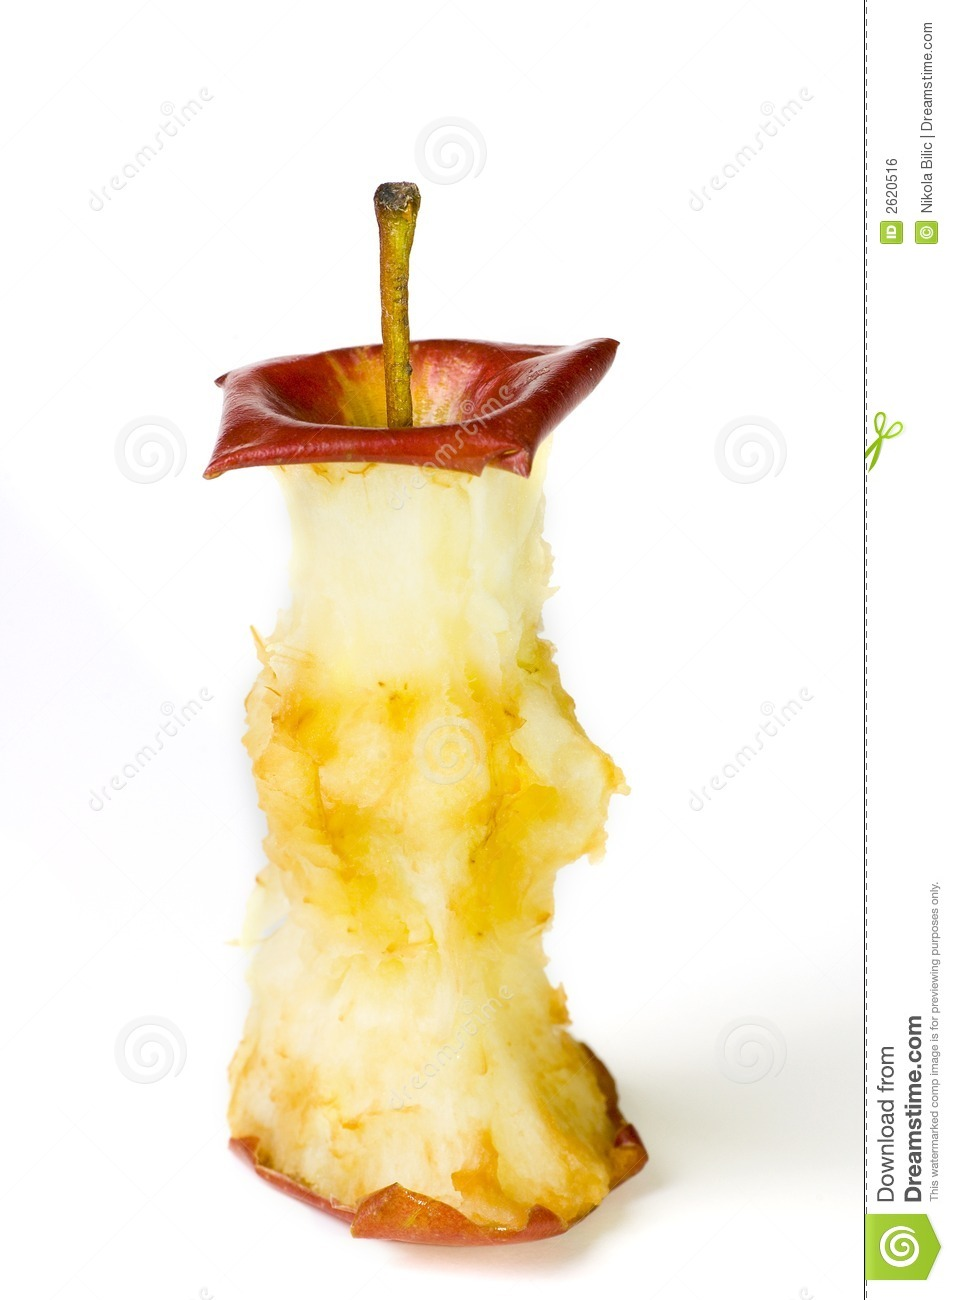 Apple Core Royalty Free Stock Image - Image: 2620516